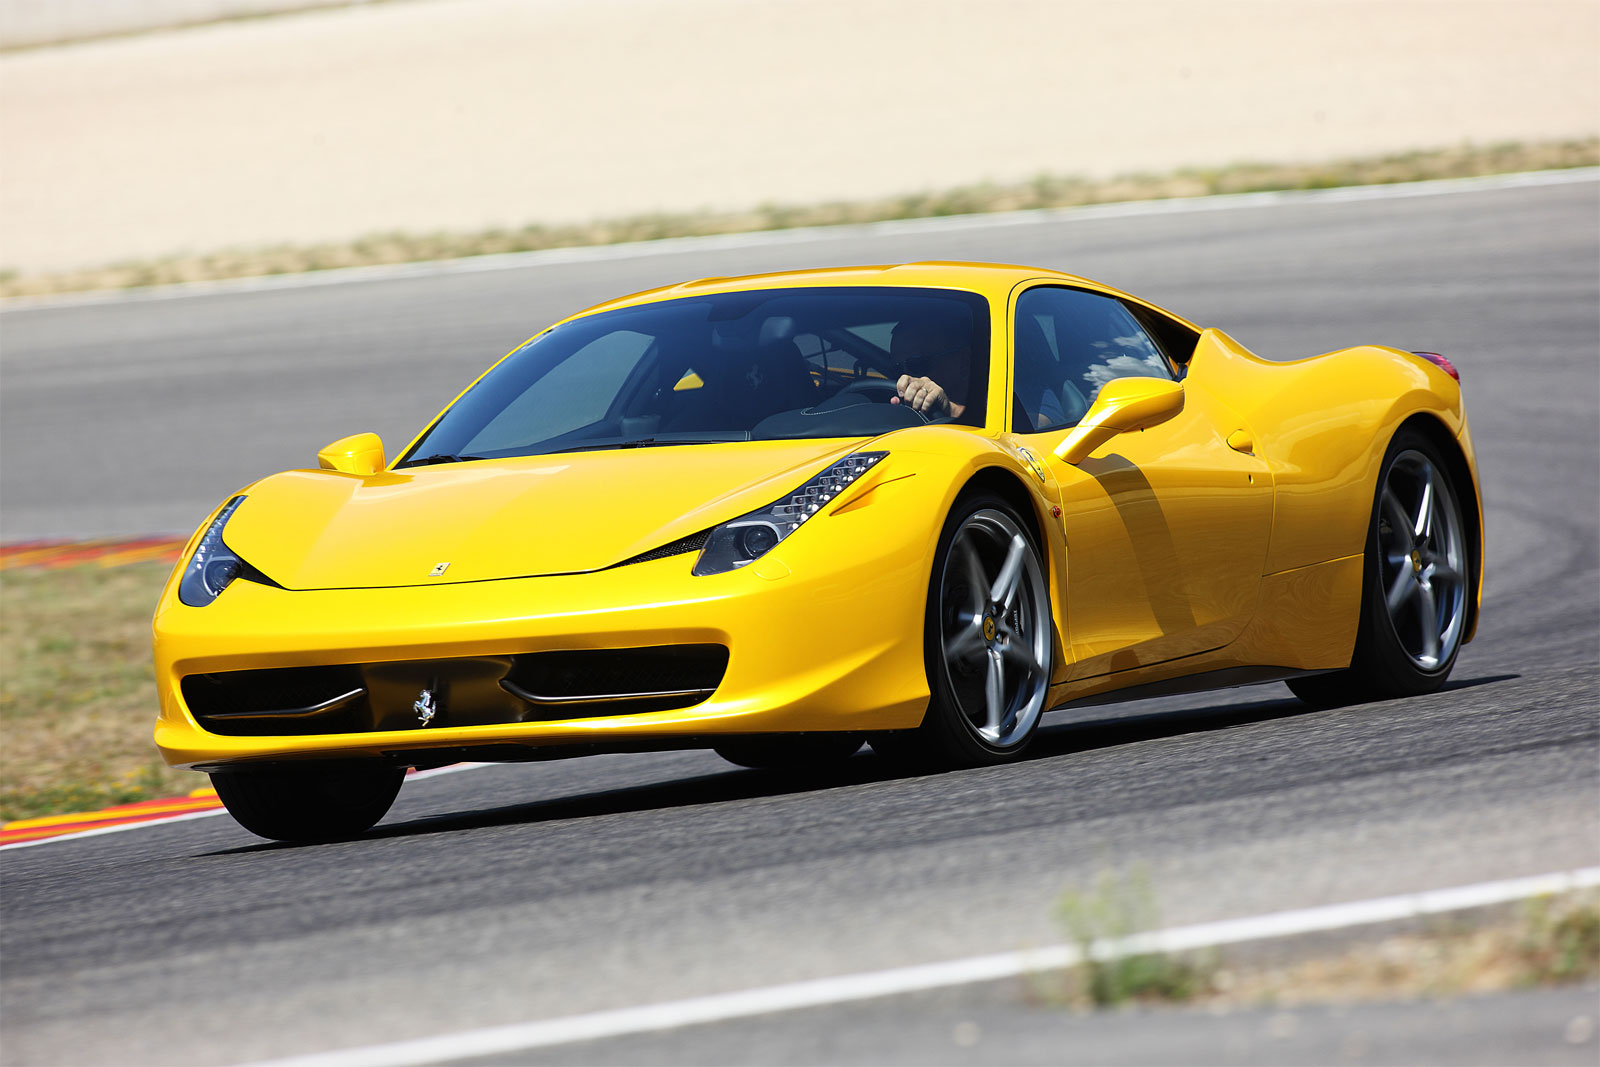 sport cars ferrari 458 italia hd wallpapers 2011. Black Bedroom Furniture Sets. Home Design Ideas